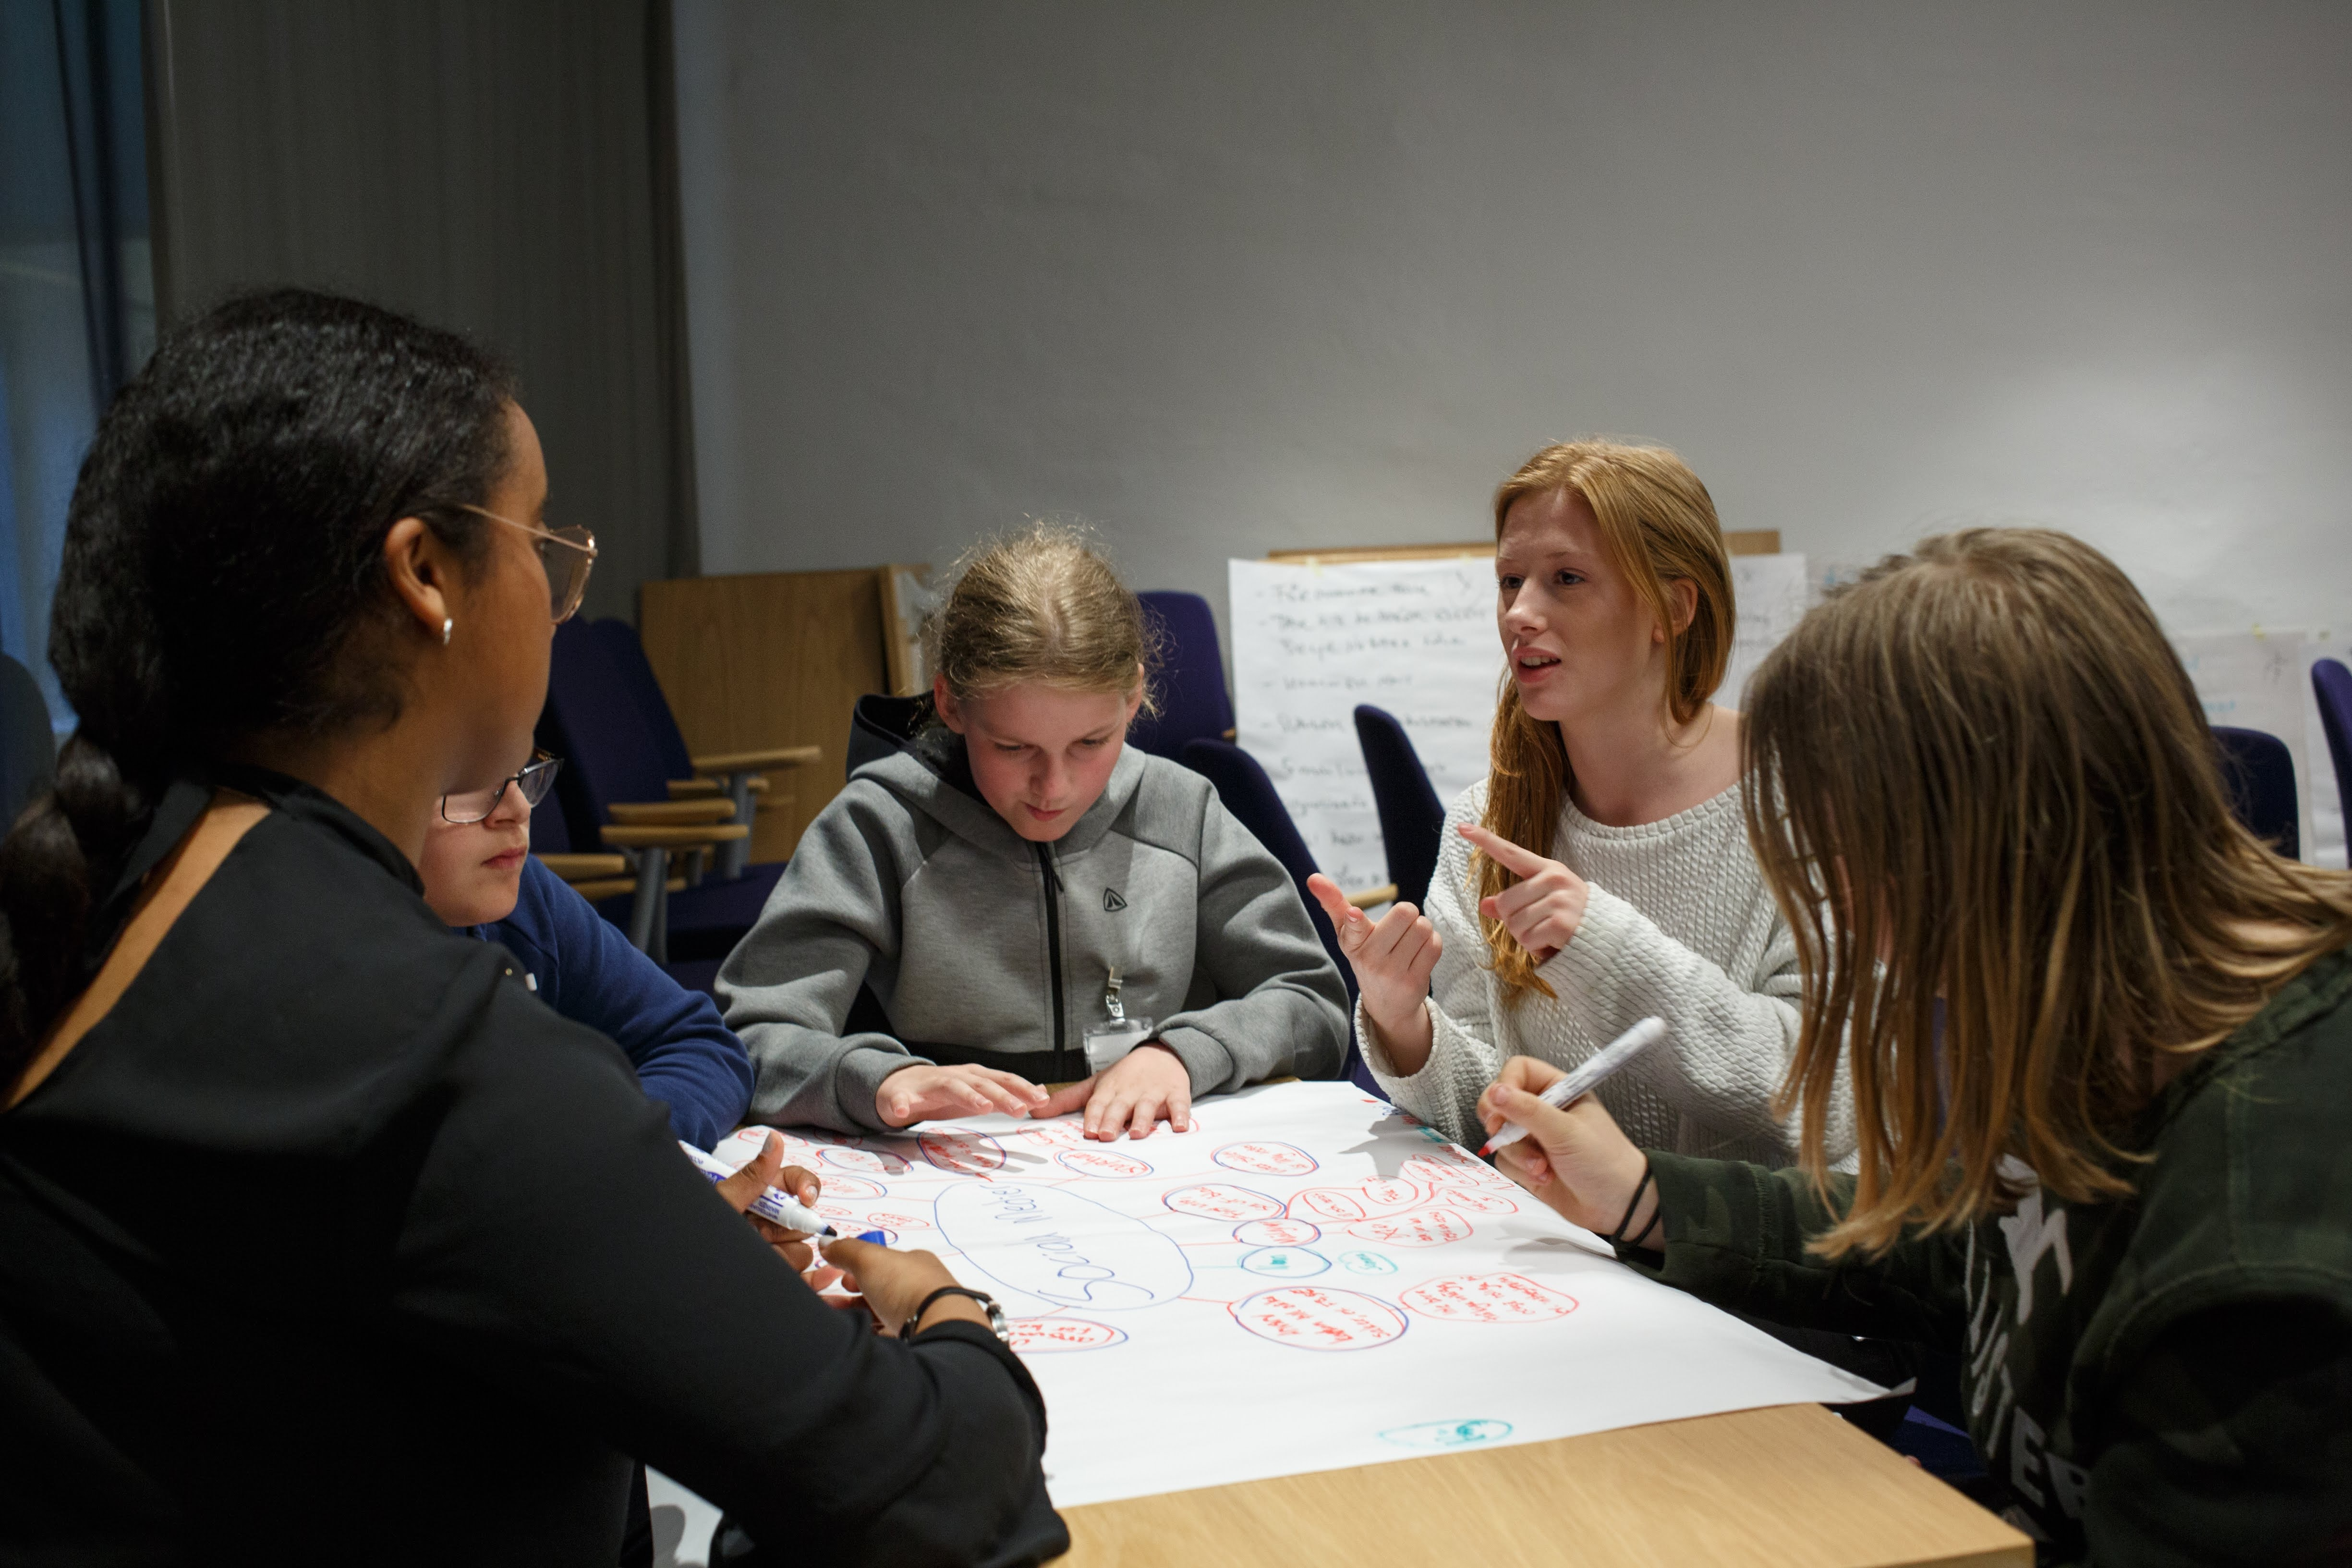 School students discussing mobility projects